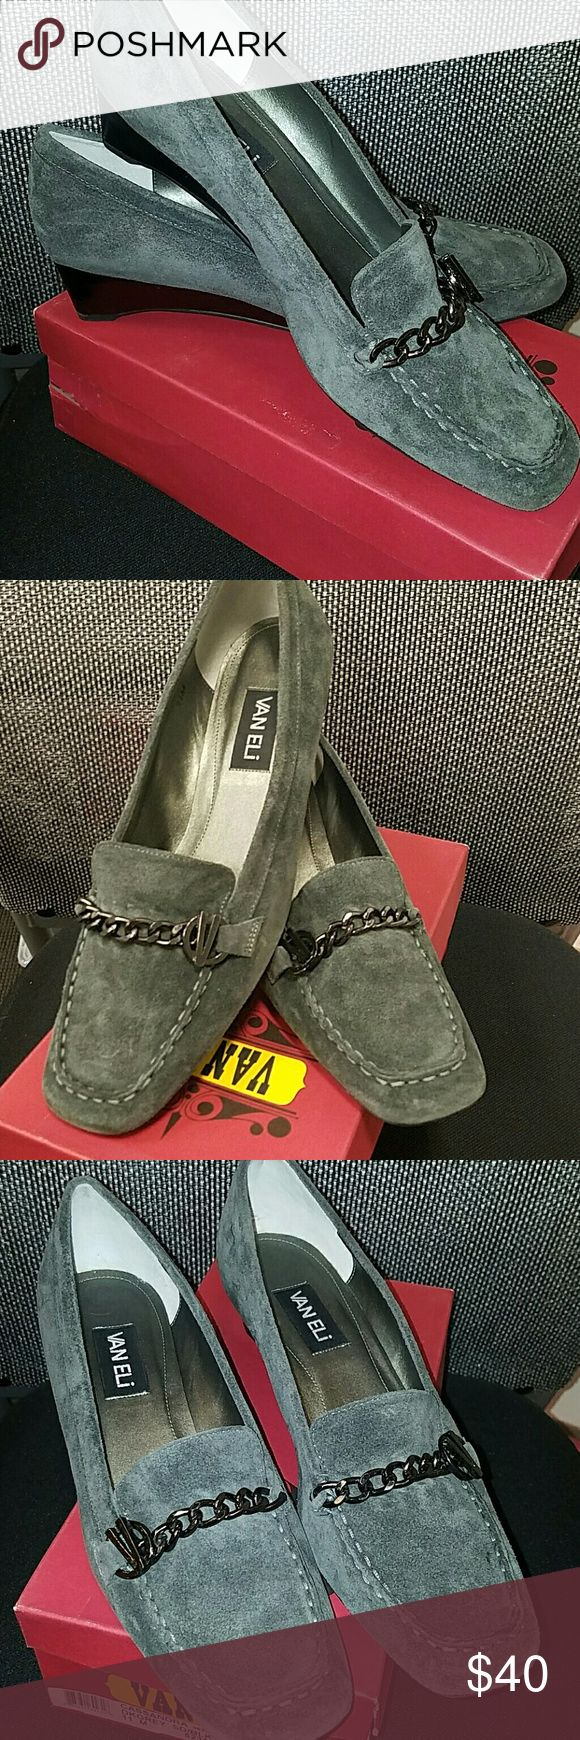 Vaneli Wedge loafers Beautiful grey suede loafers with chain accent. 1 inch wedge heel. Vaneli Shoes Flats & Loafers